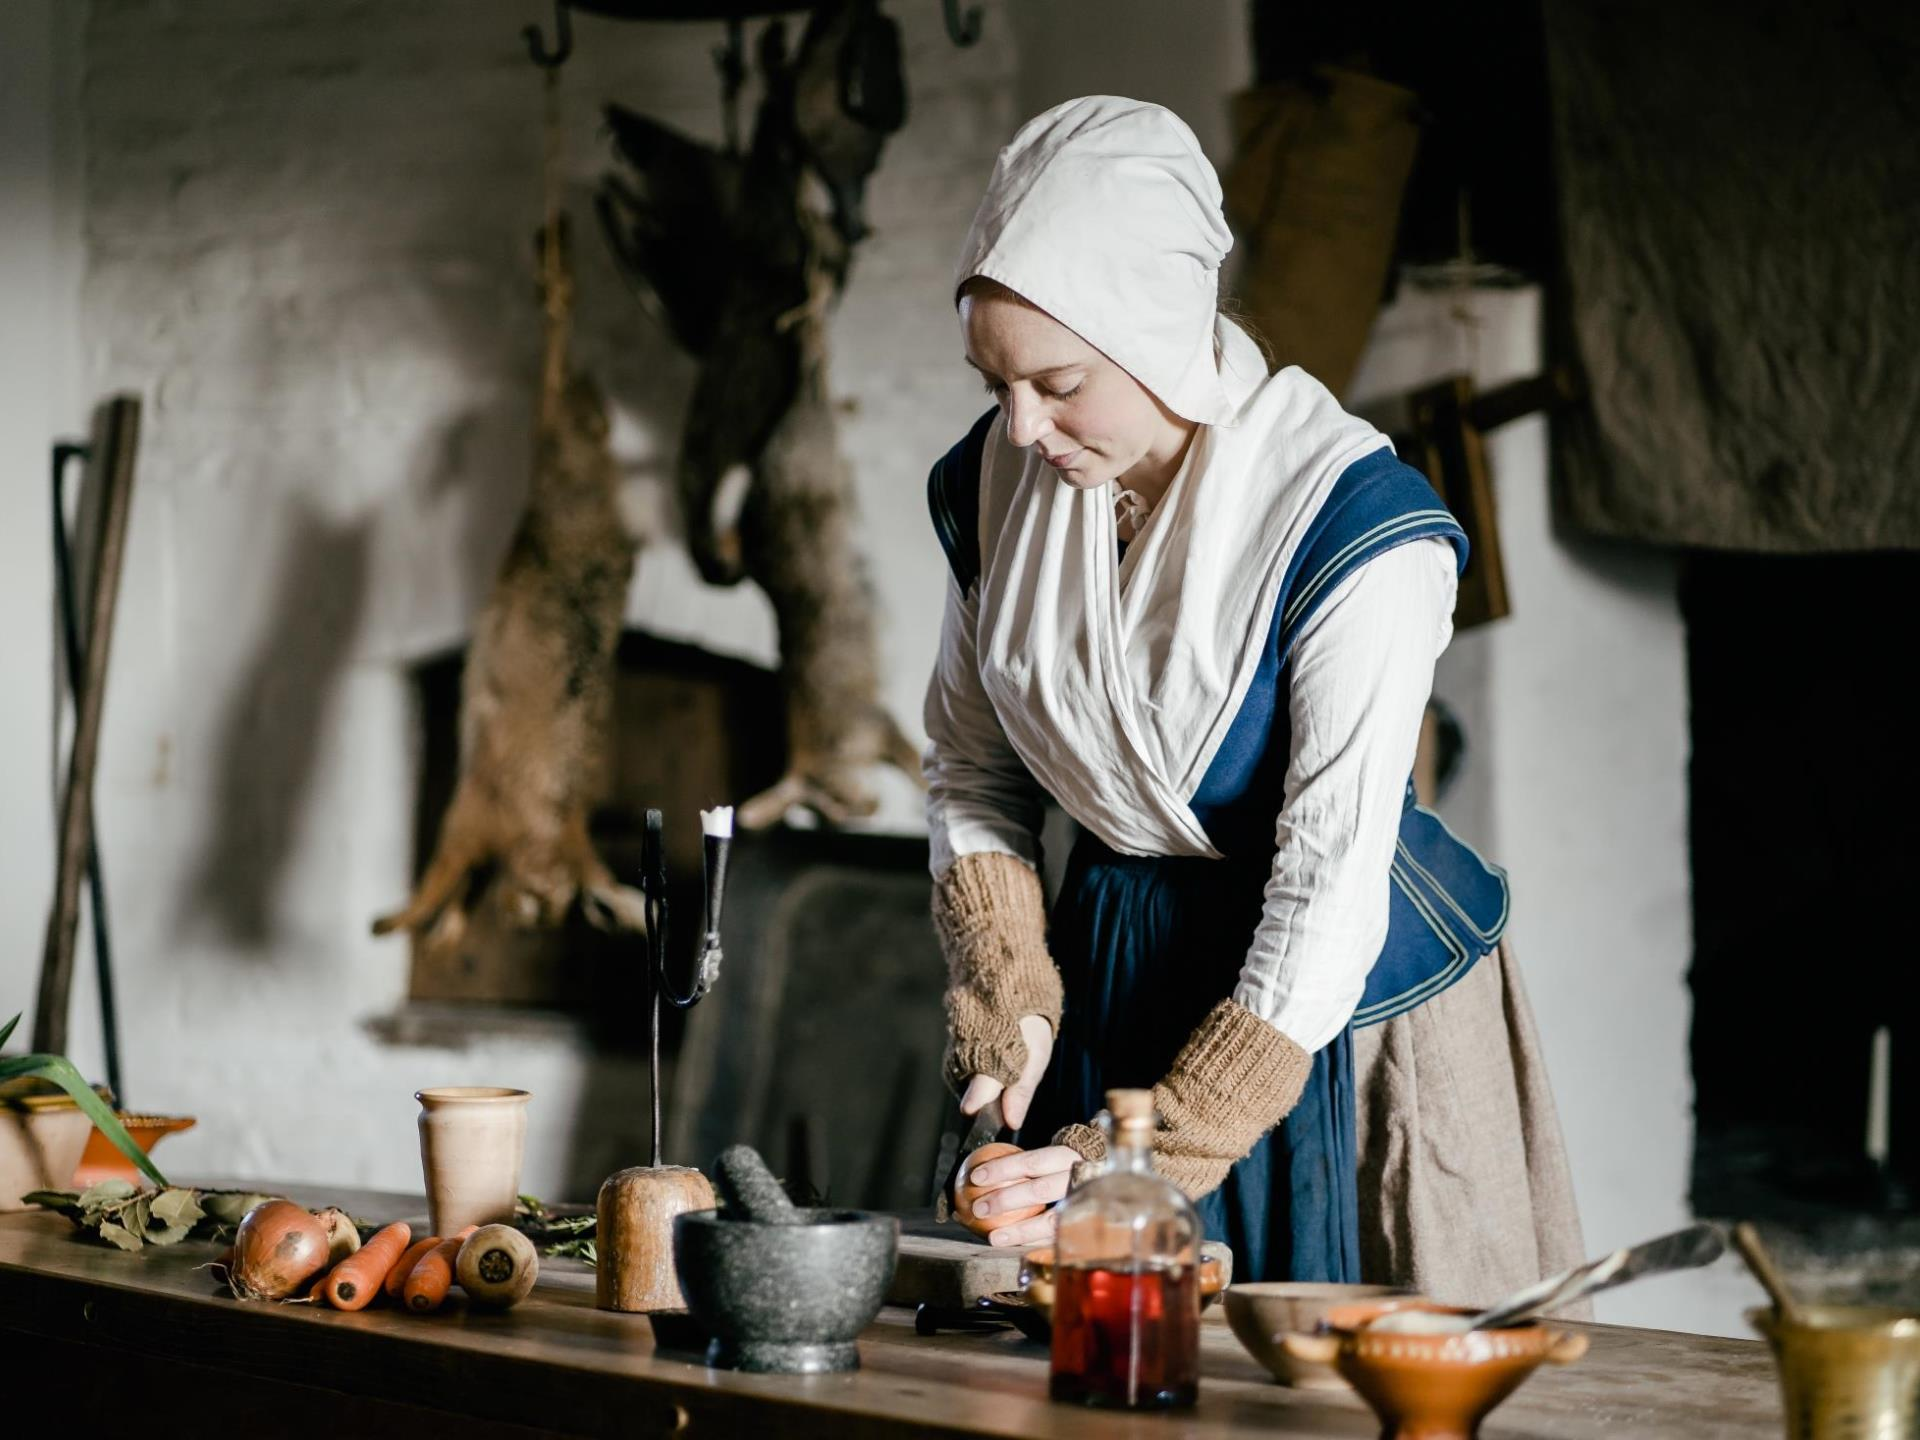 The kitchen at Llancaiach Fawr Manor